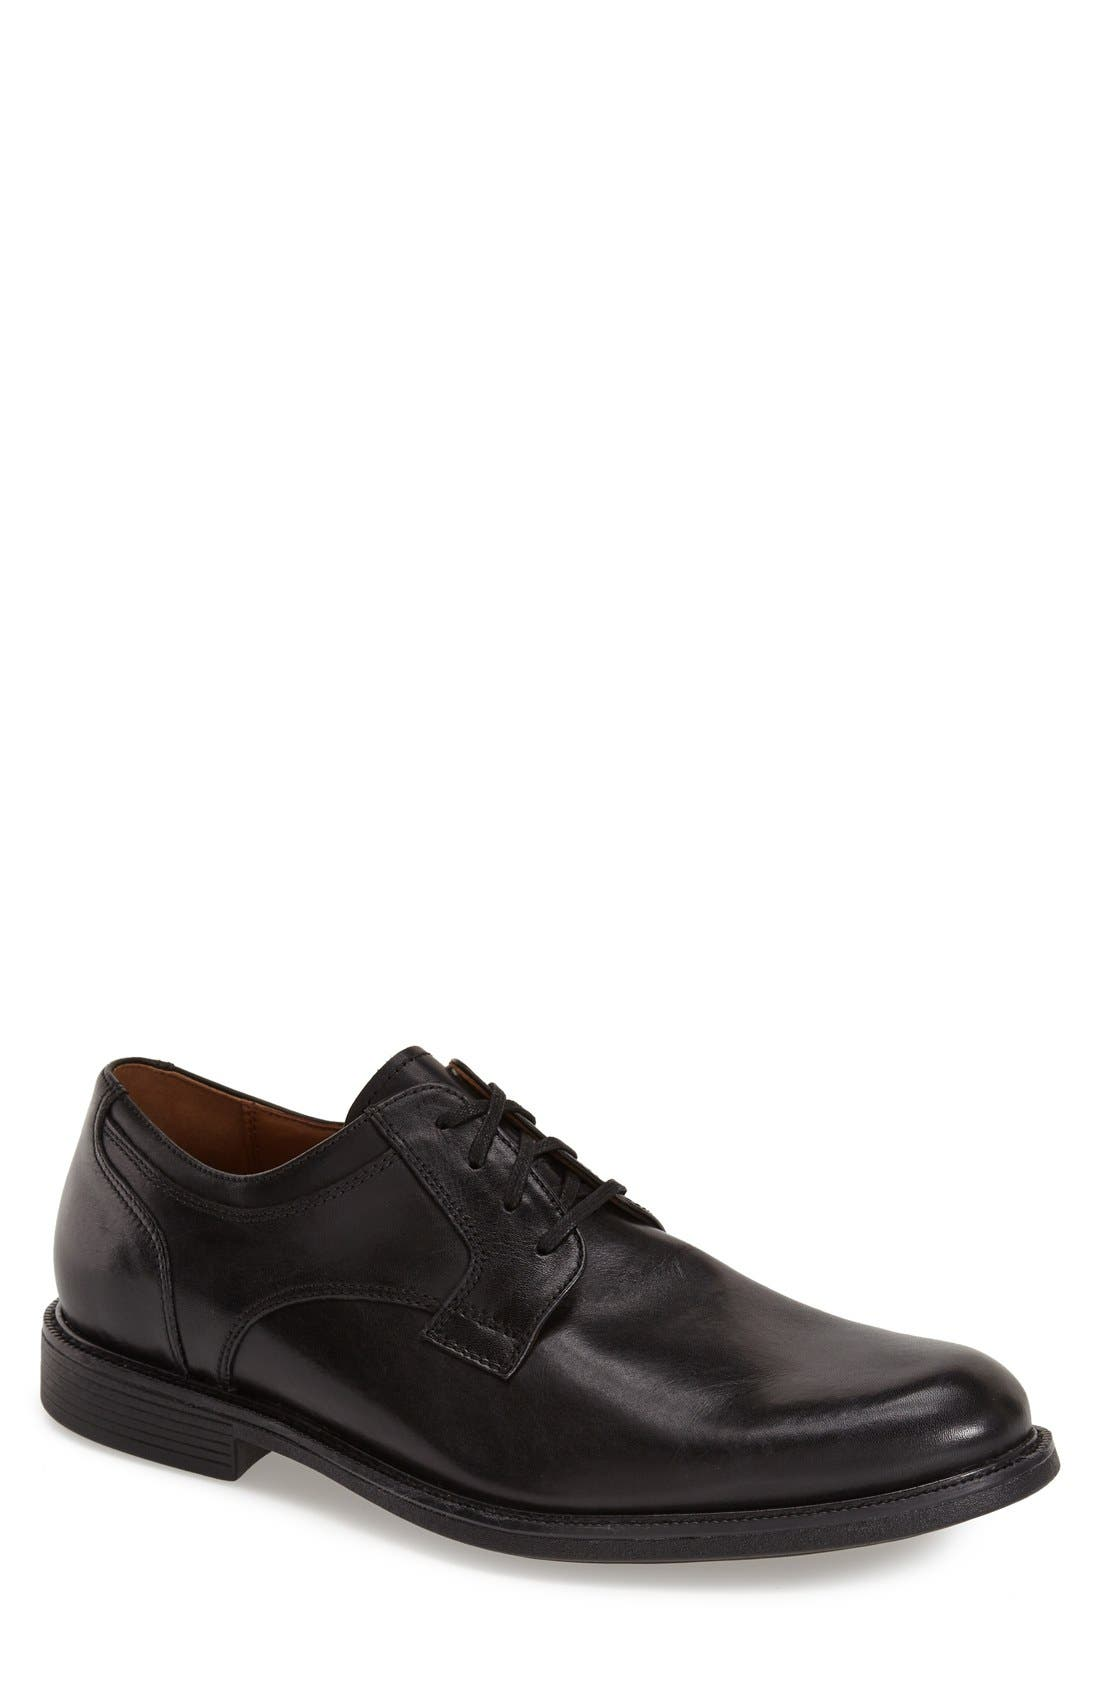 Main Image - Johnston & Murphy 'Cardell' Plain Toe Derby (Men)